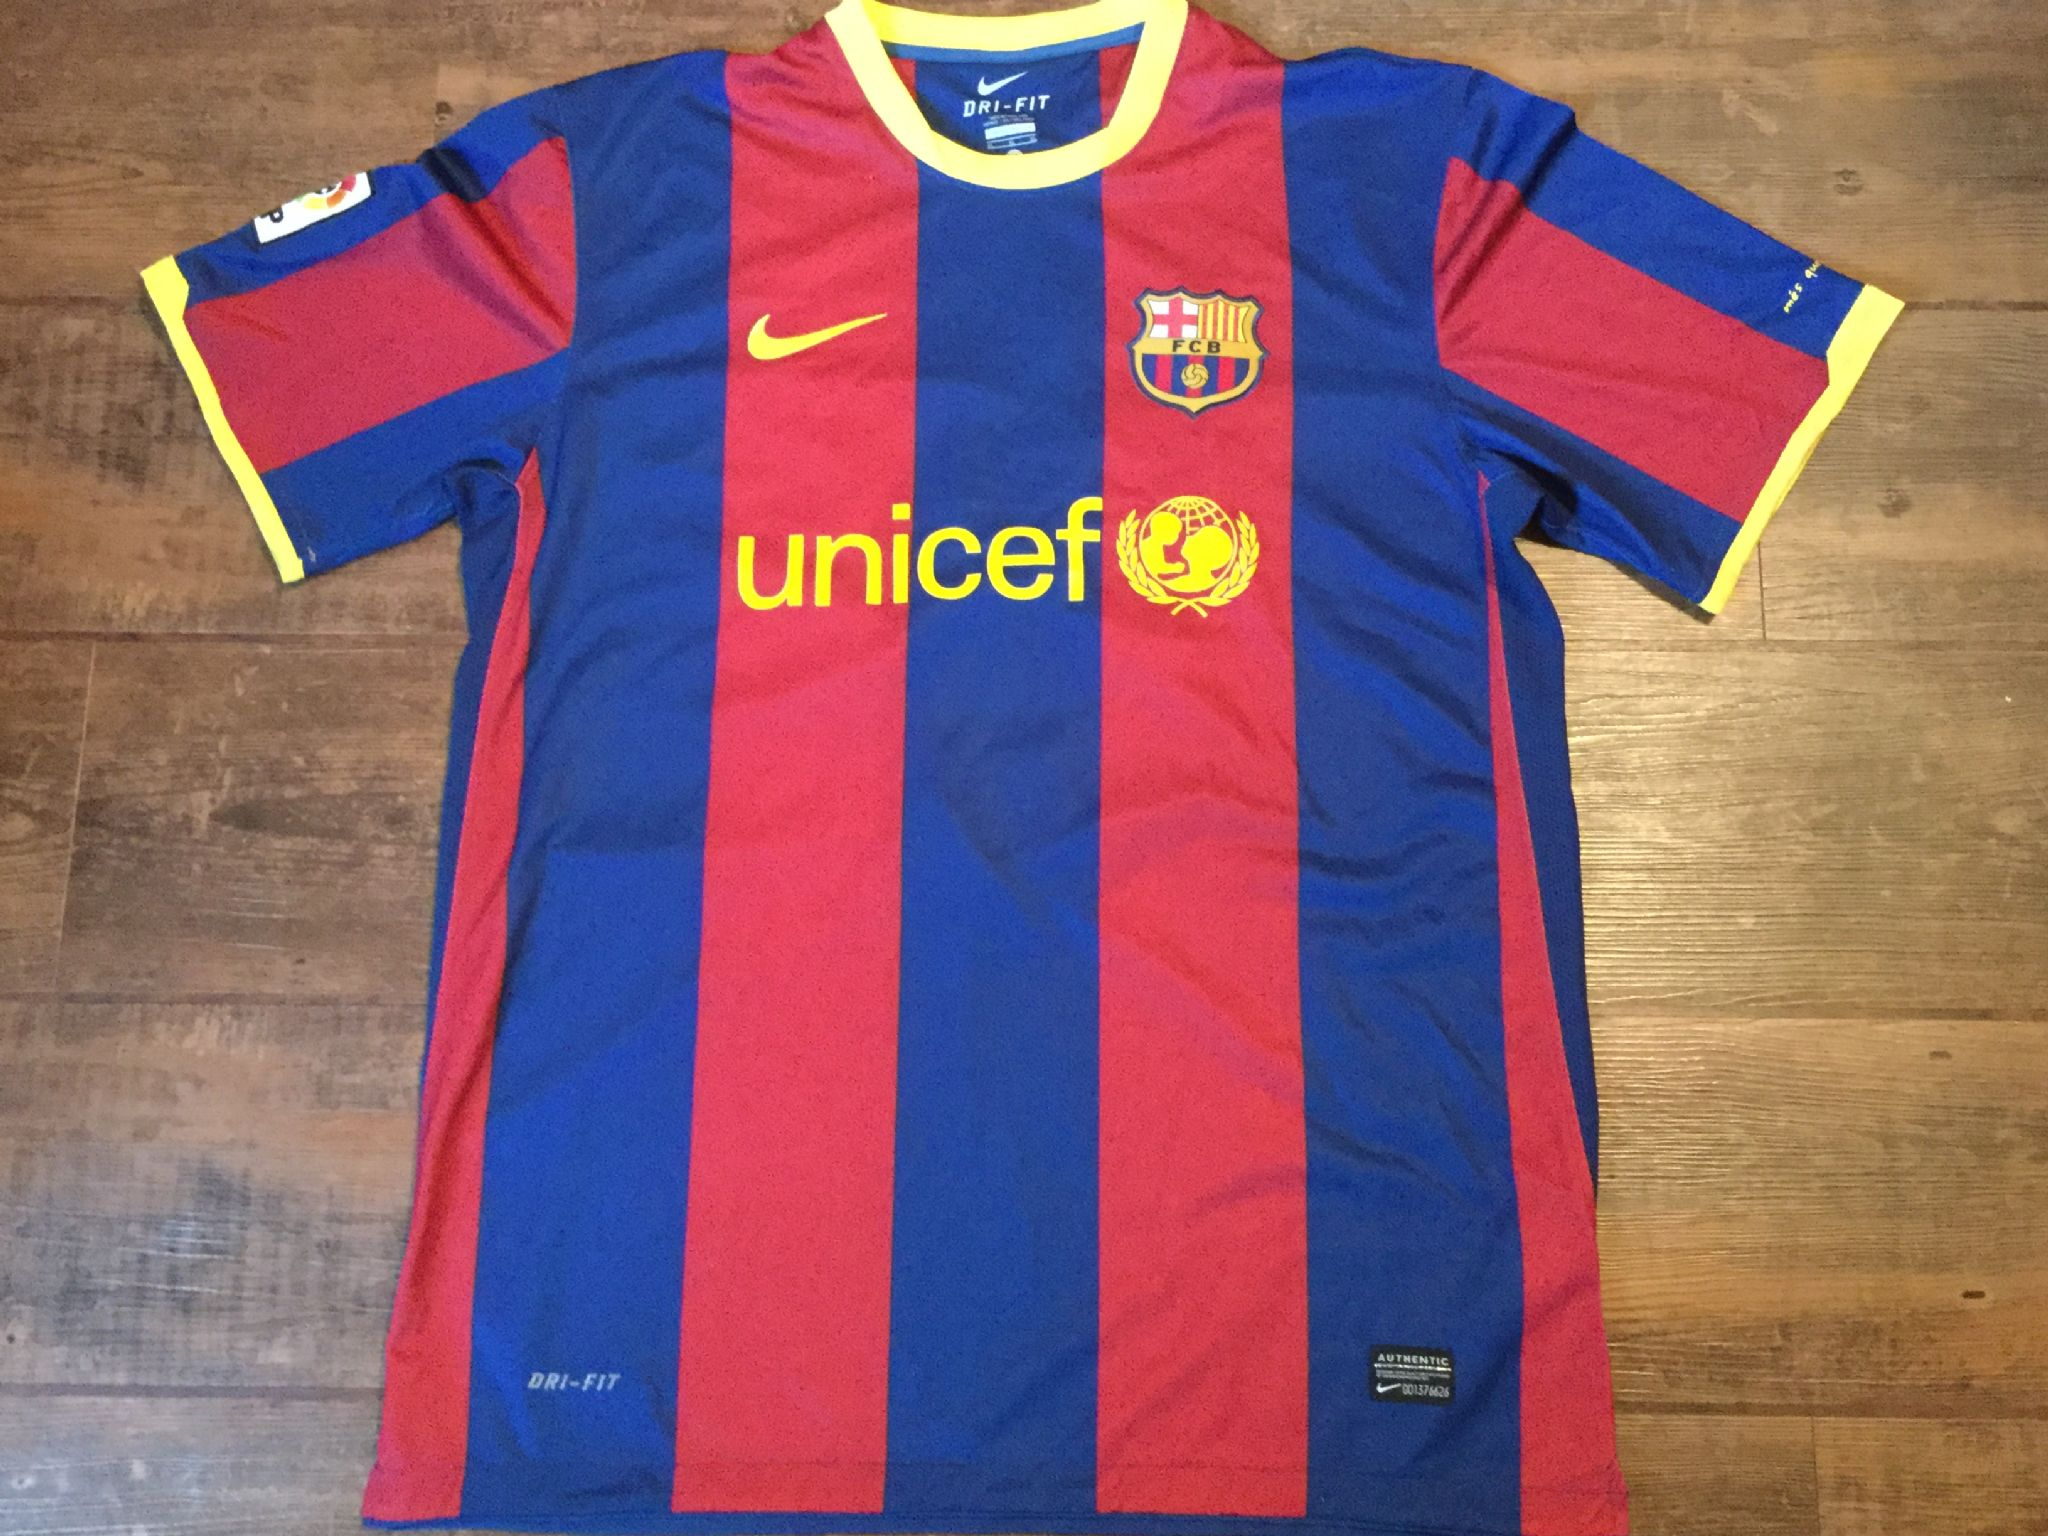 79f4a0a6b15 Global Classic Football Shirts | 2010 Barcelona Messi Old Vintage Soccer  Jerseys